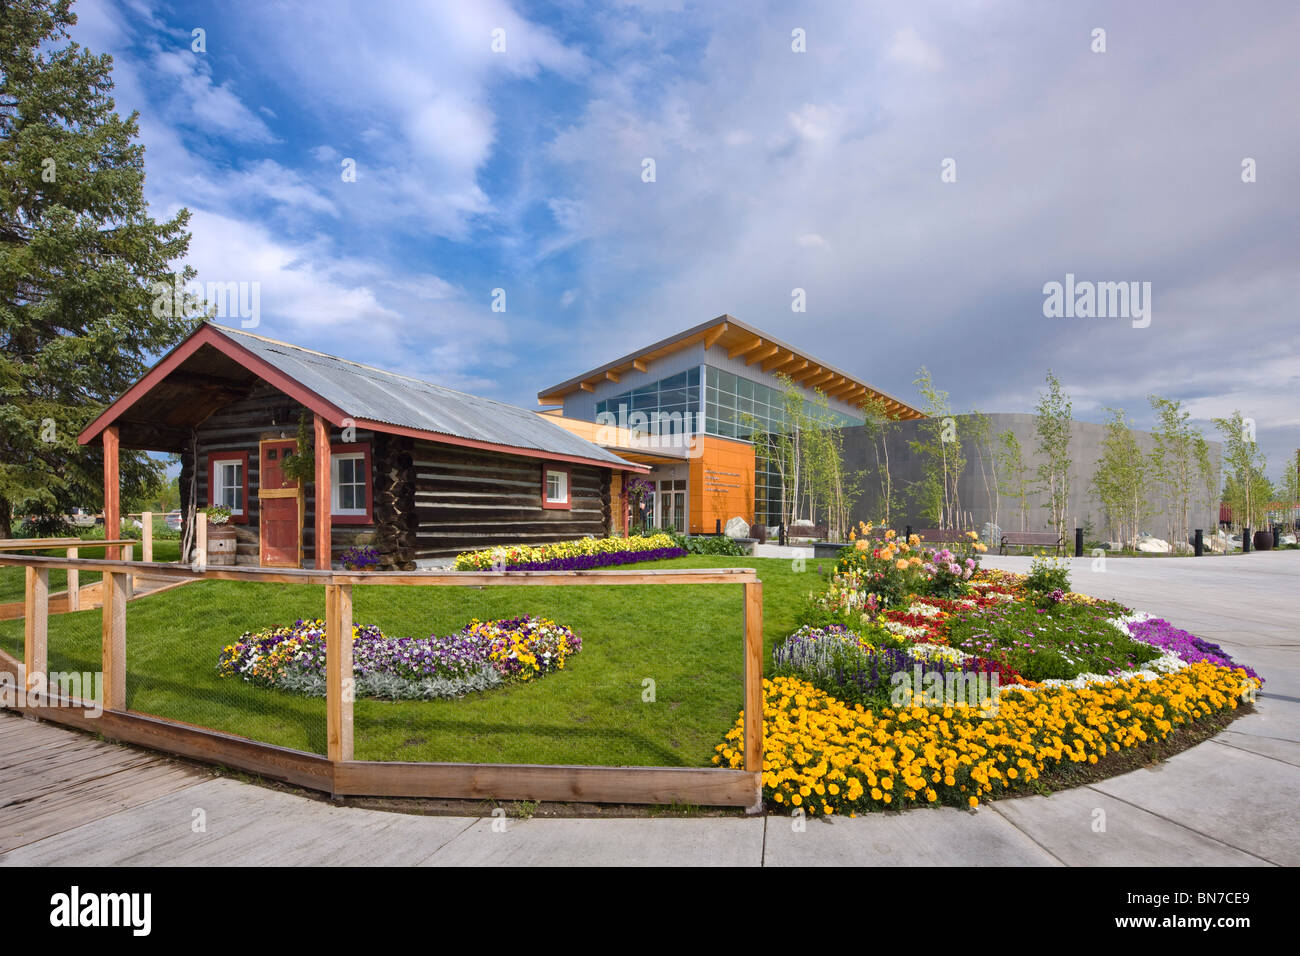 The Morris Thompson Cultural And Visitors Center In Downtown Fairbanks,  Alaska